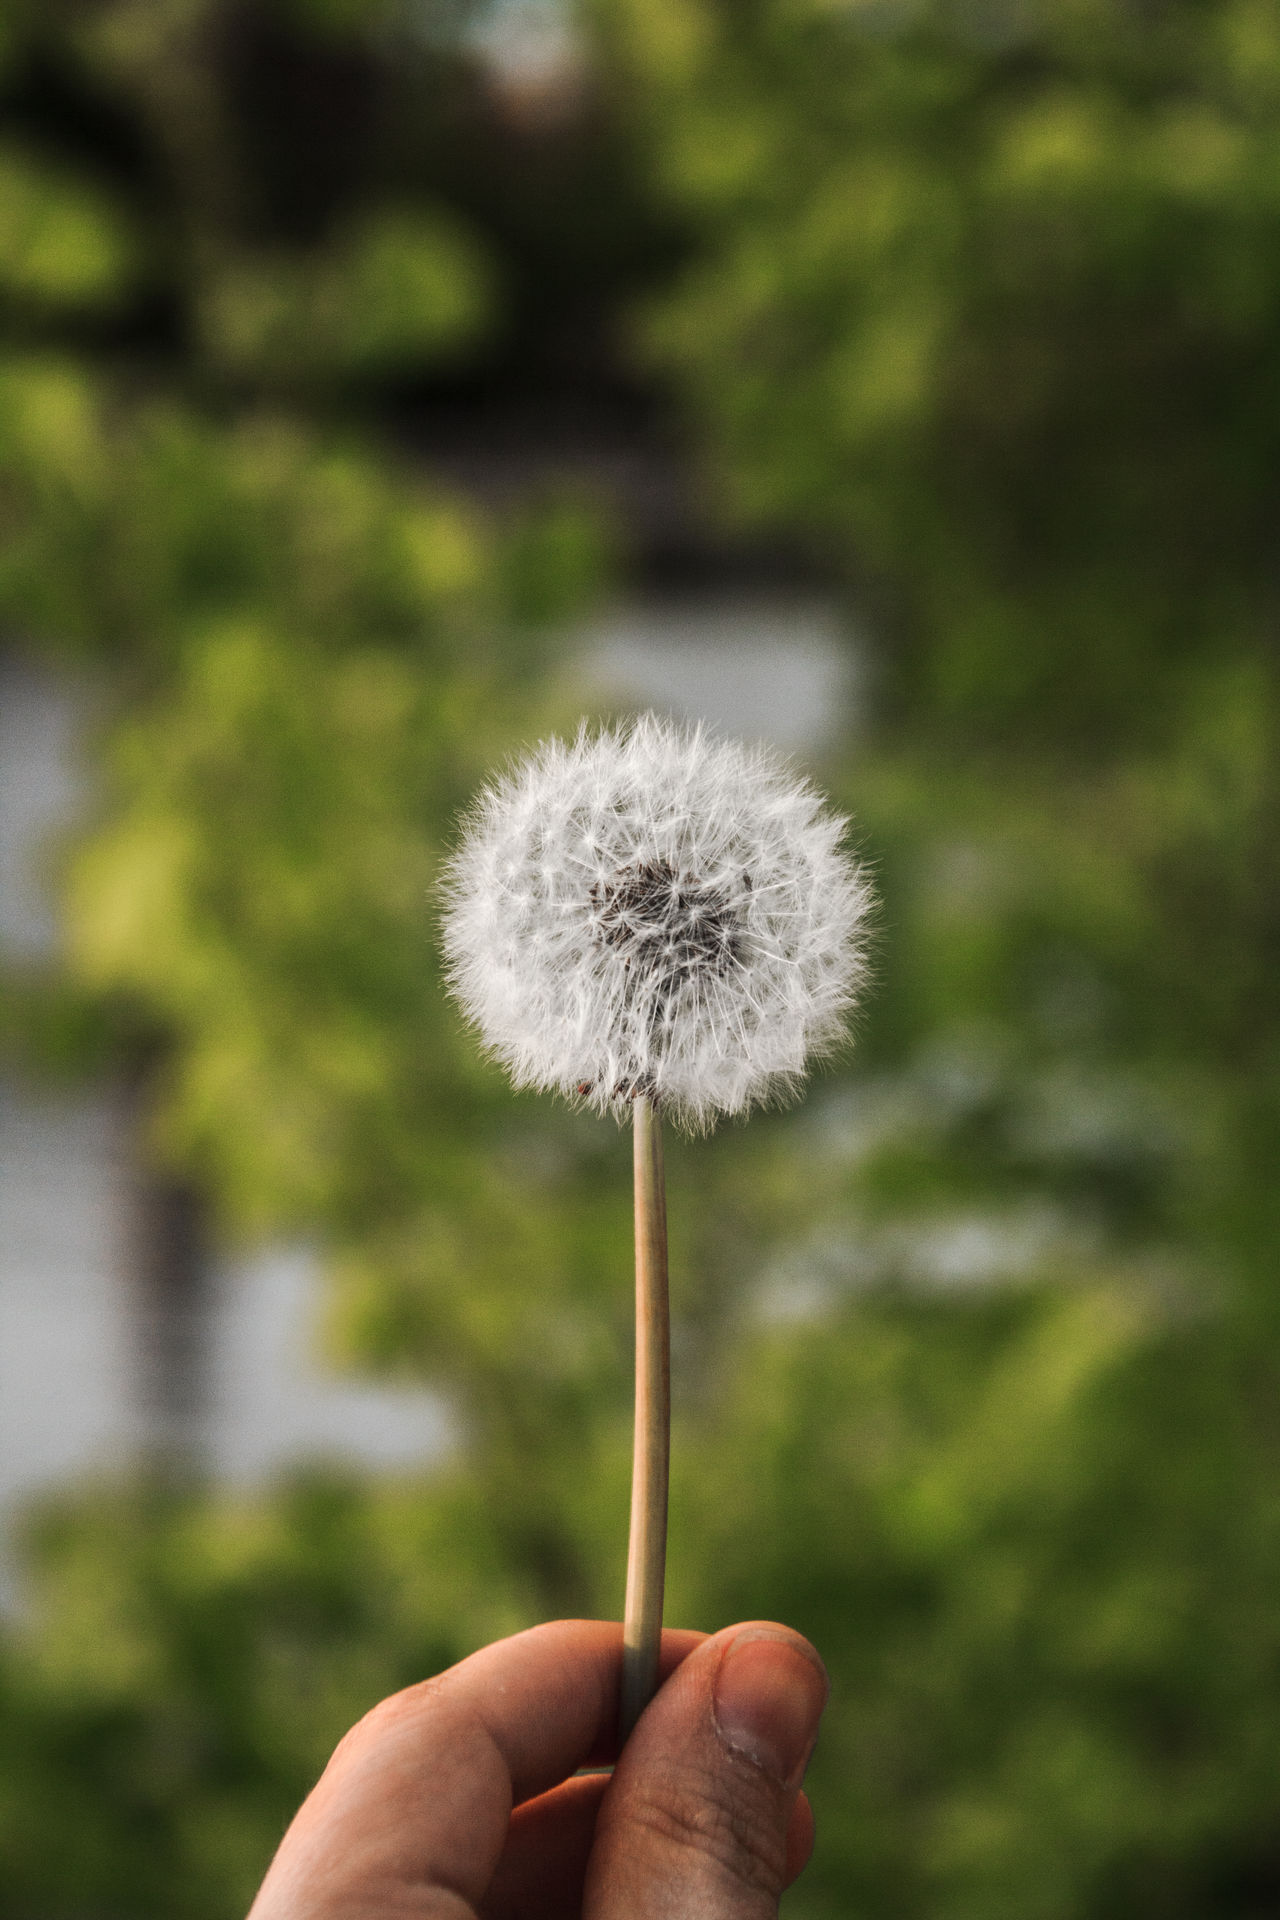 Beauty In Nature Close-up Dandelion Day Flower Flower Head Focus On Foreground Fragility Freshness Growth Holding Human Human Body Part Human Finger Human Hand Lifestyles Mindfulness Nature Outdoors Plant Real People